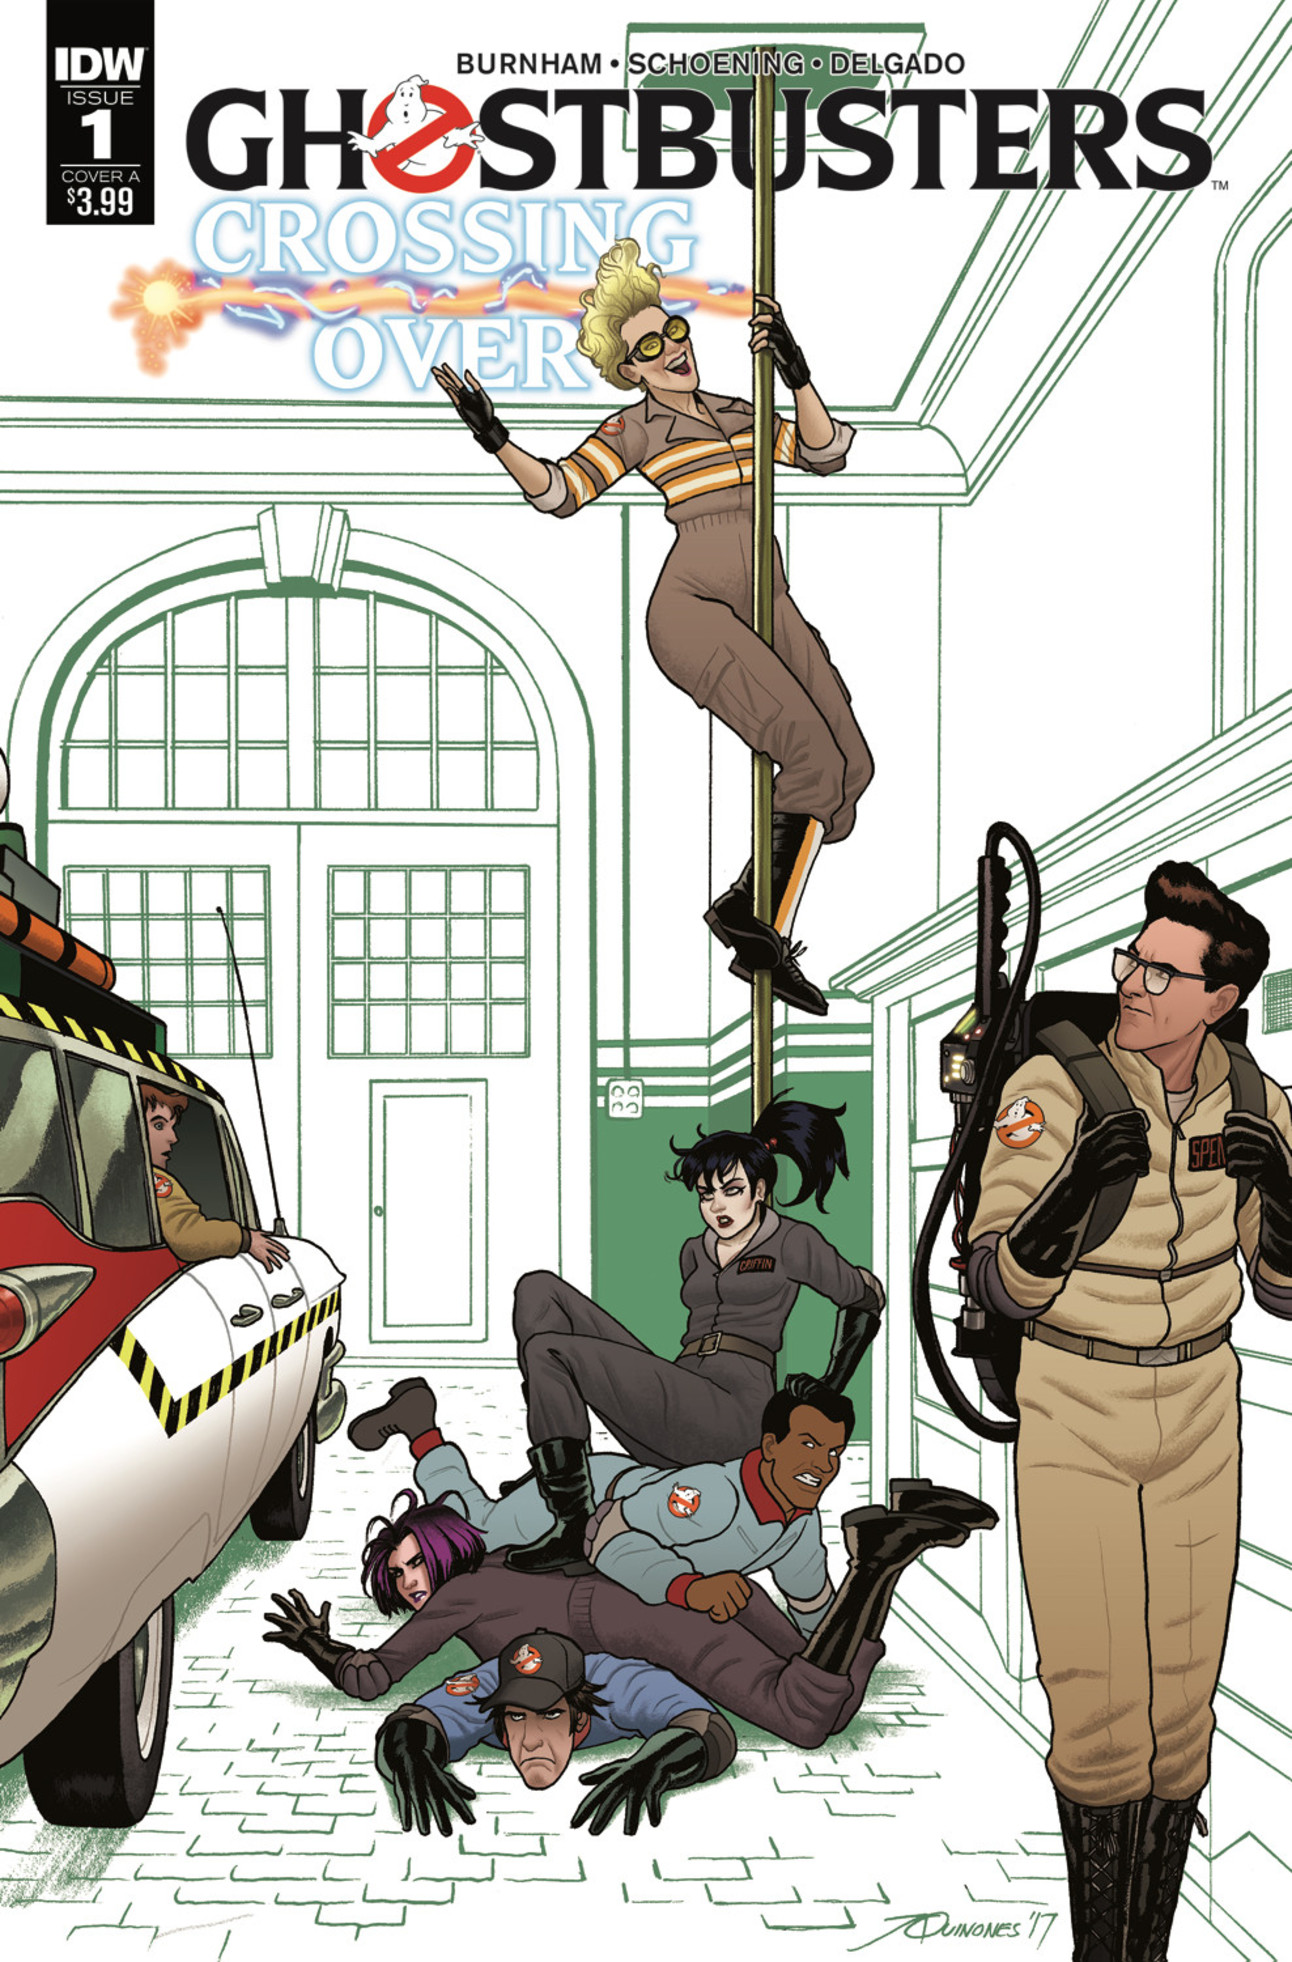 idw_ghostbusters_crossing_over_1_cover.jpg